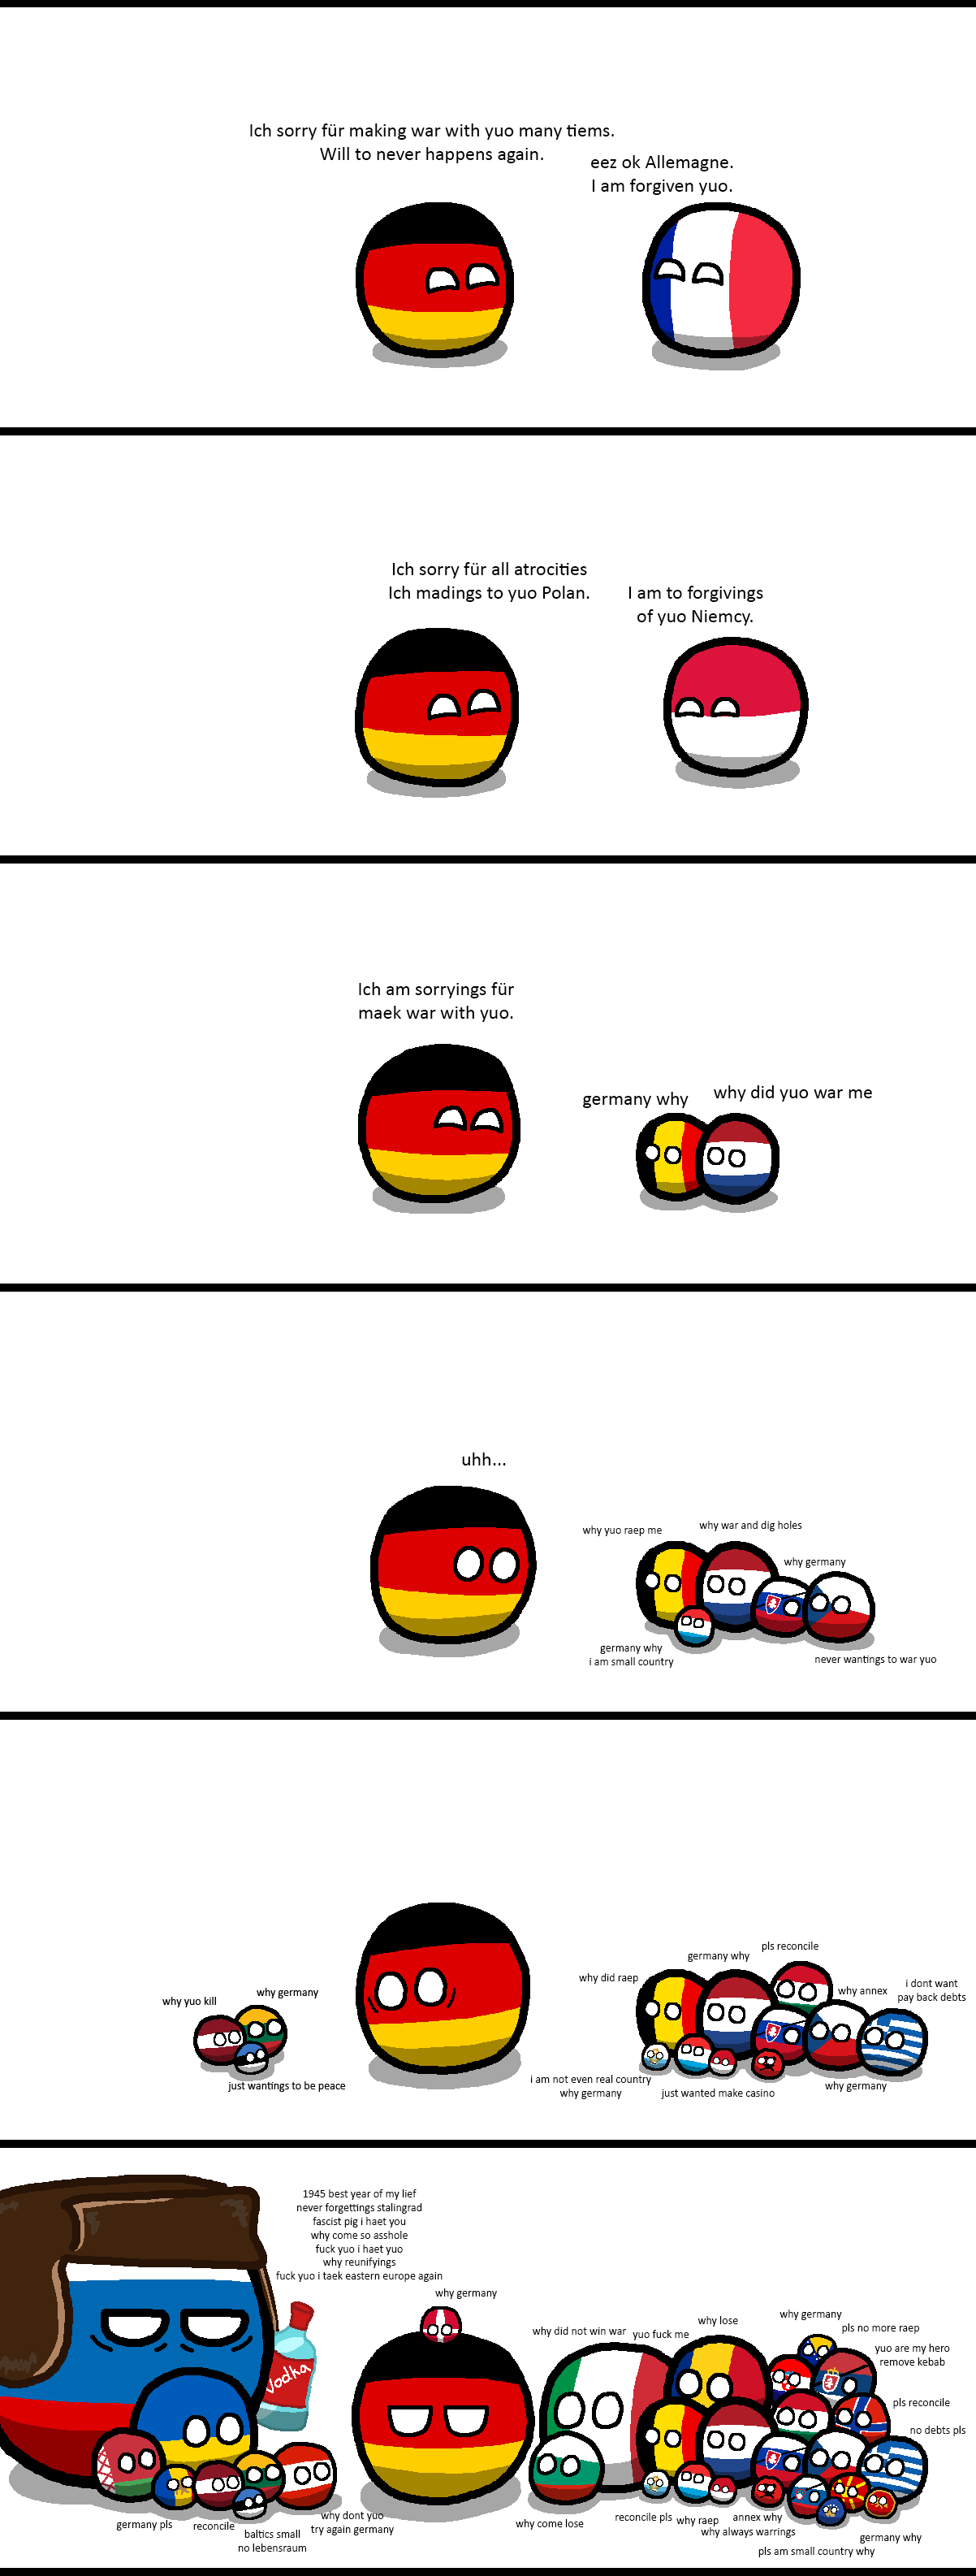 country-balls-reconciliation-in-europe